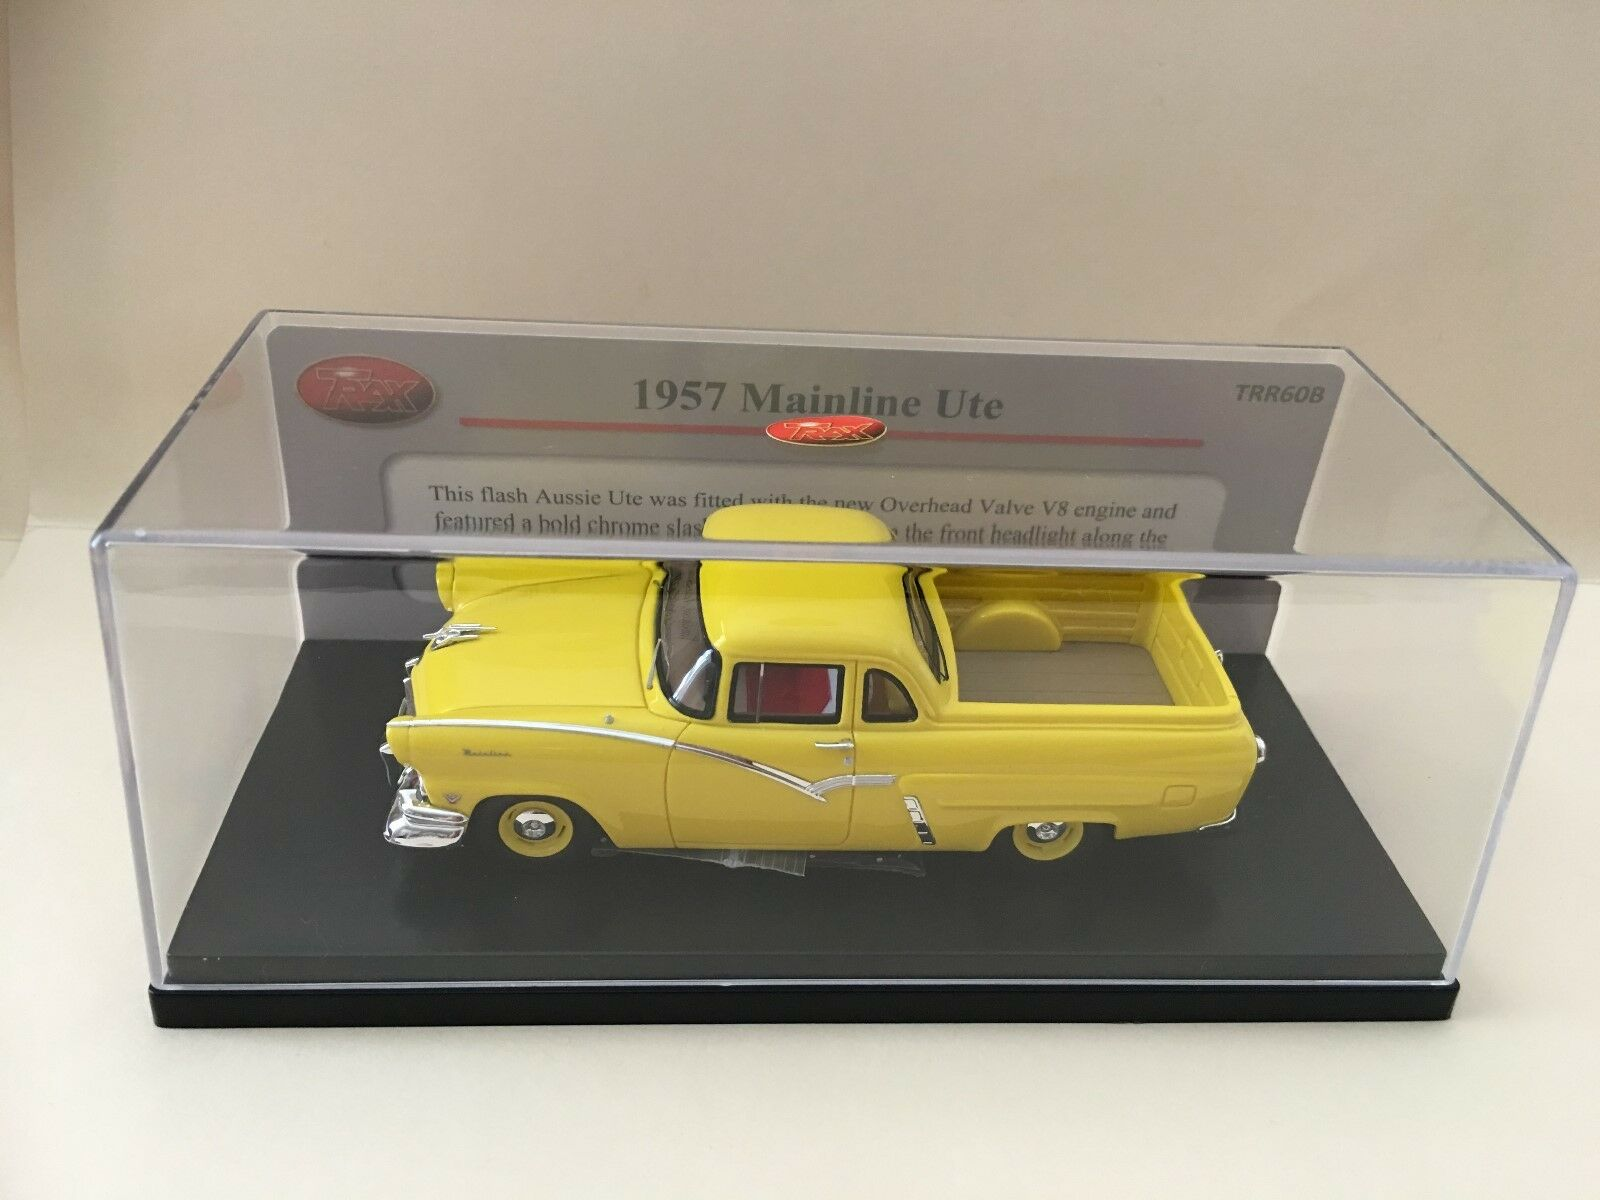 1 43 Trax TRR60B -1957 Mainline Ute -giallo  RESIN